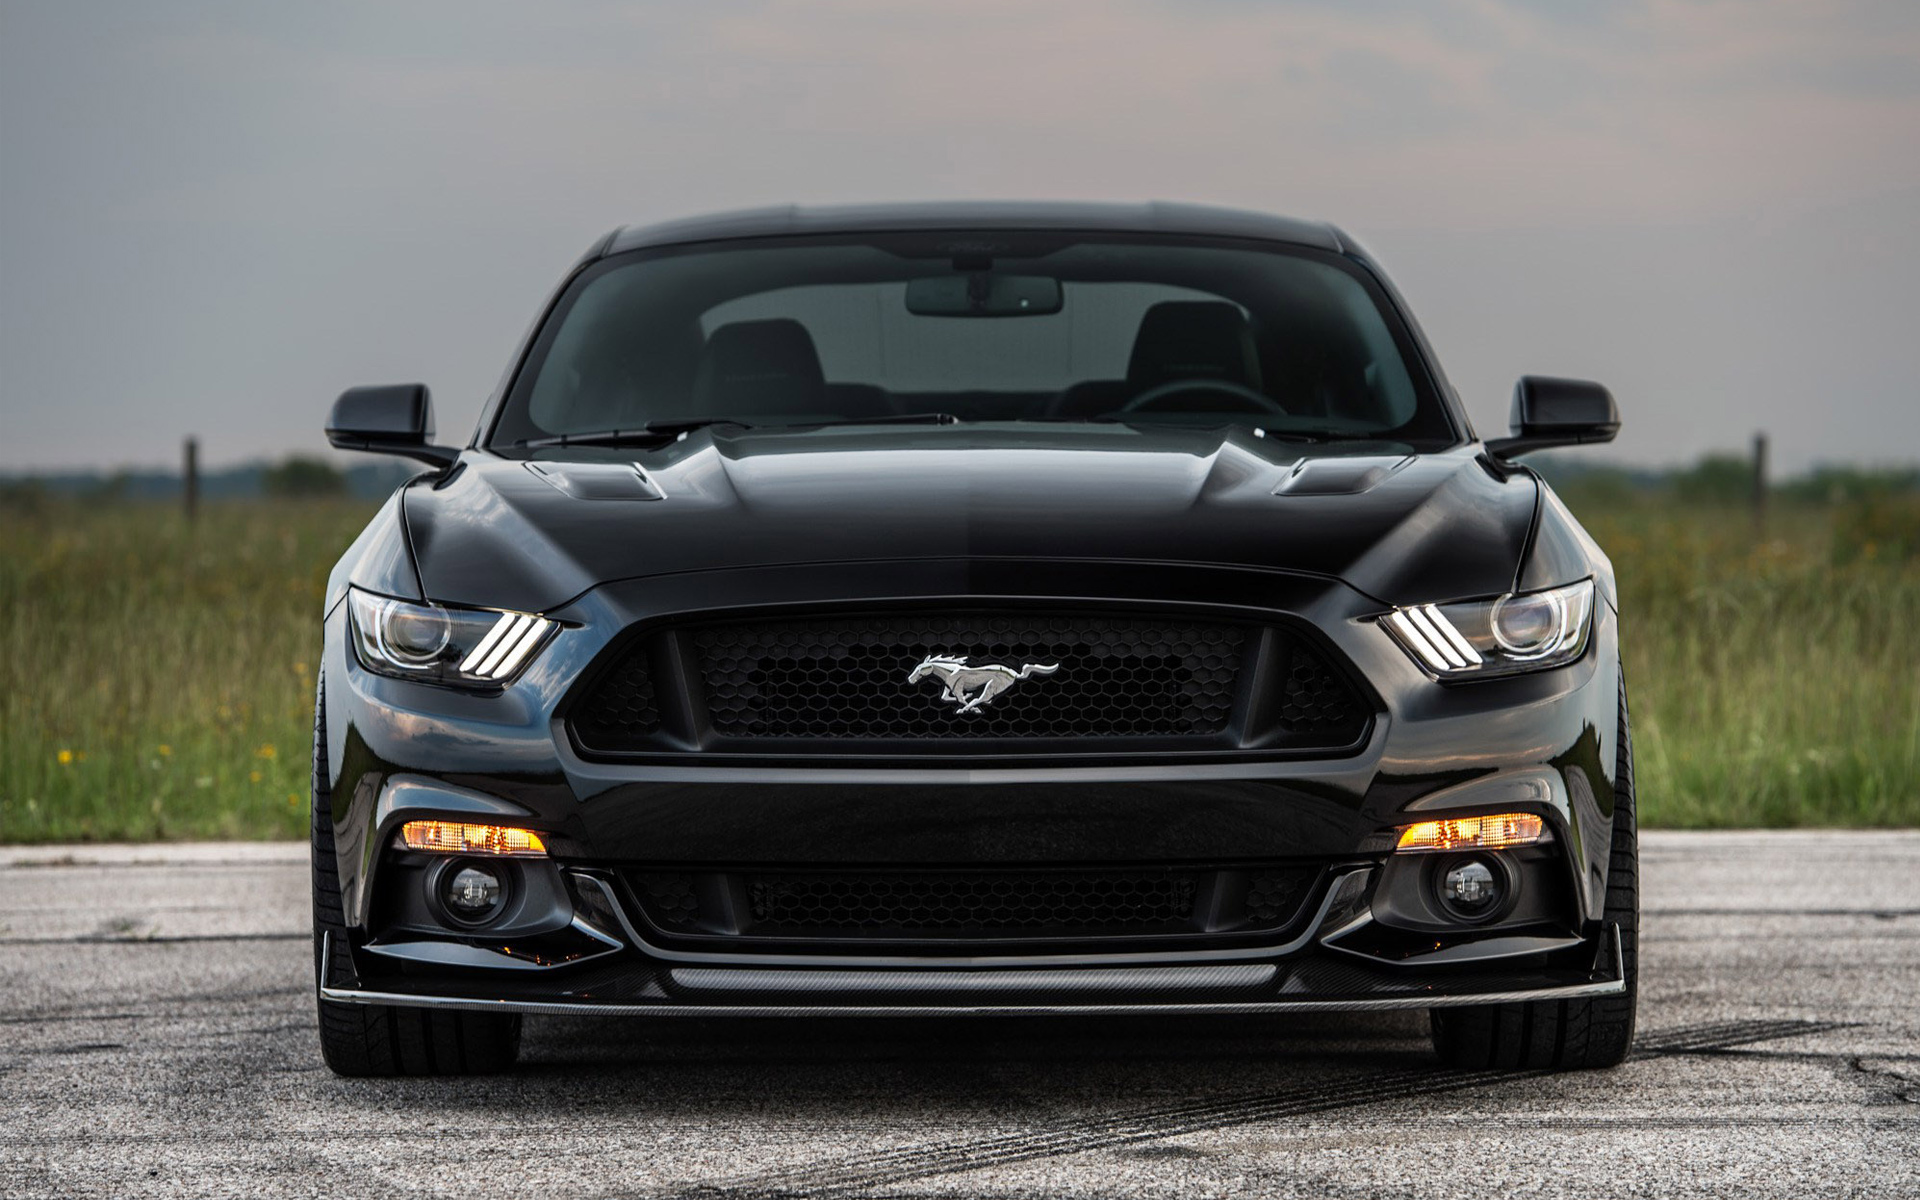 Hennessey 25th Anniversary Edition Hpe800 Ford Mustang For: 2016 Hennessey Ford Mustang HPE800 25th Anniversary